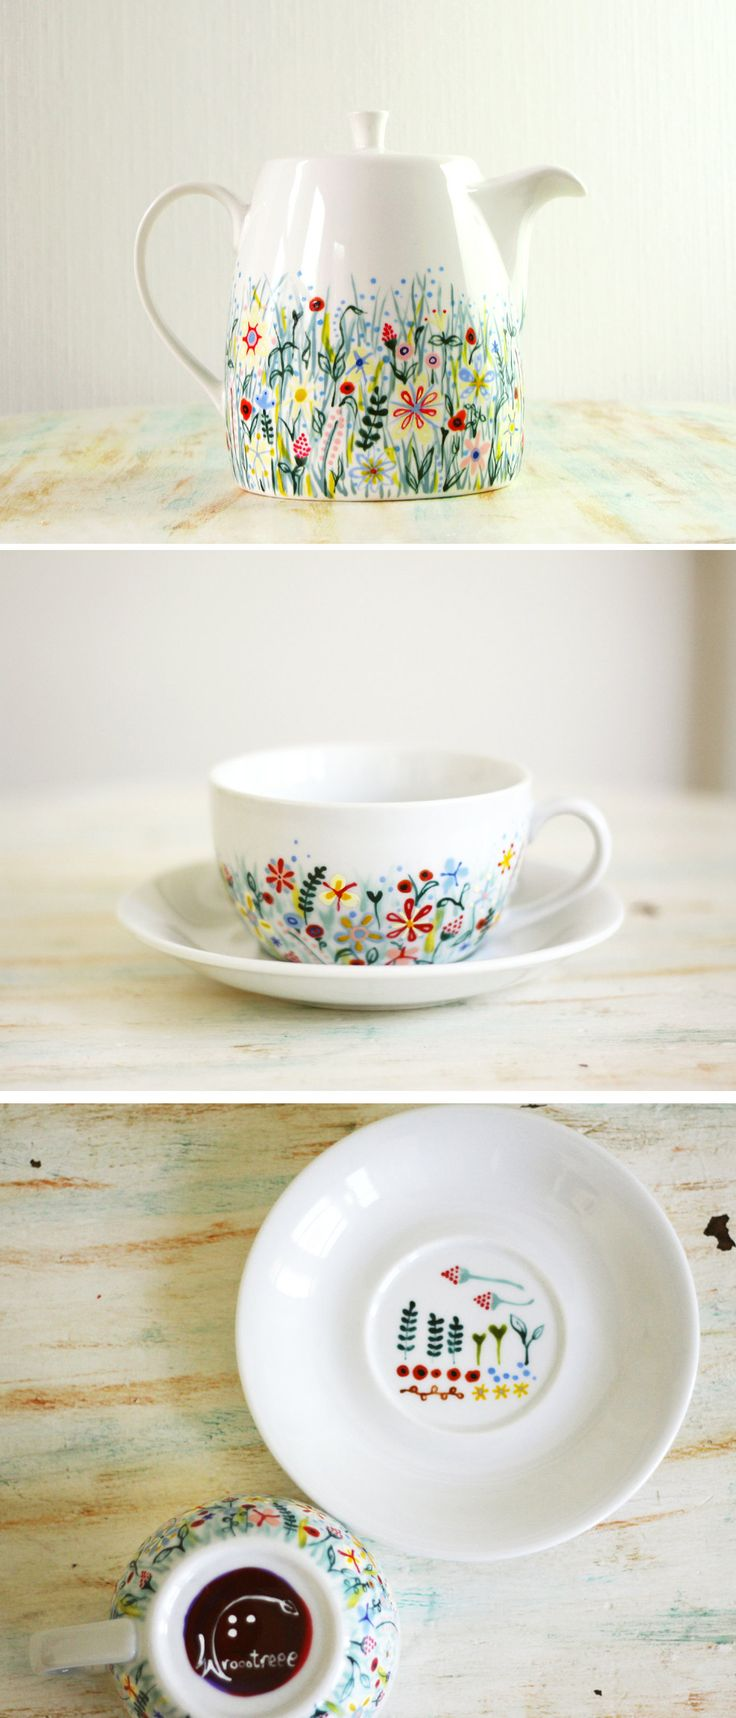 Best 25+ Ceramic painting ideas on Pinterest | Pottery ...